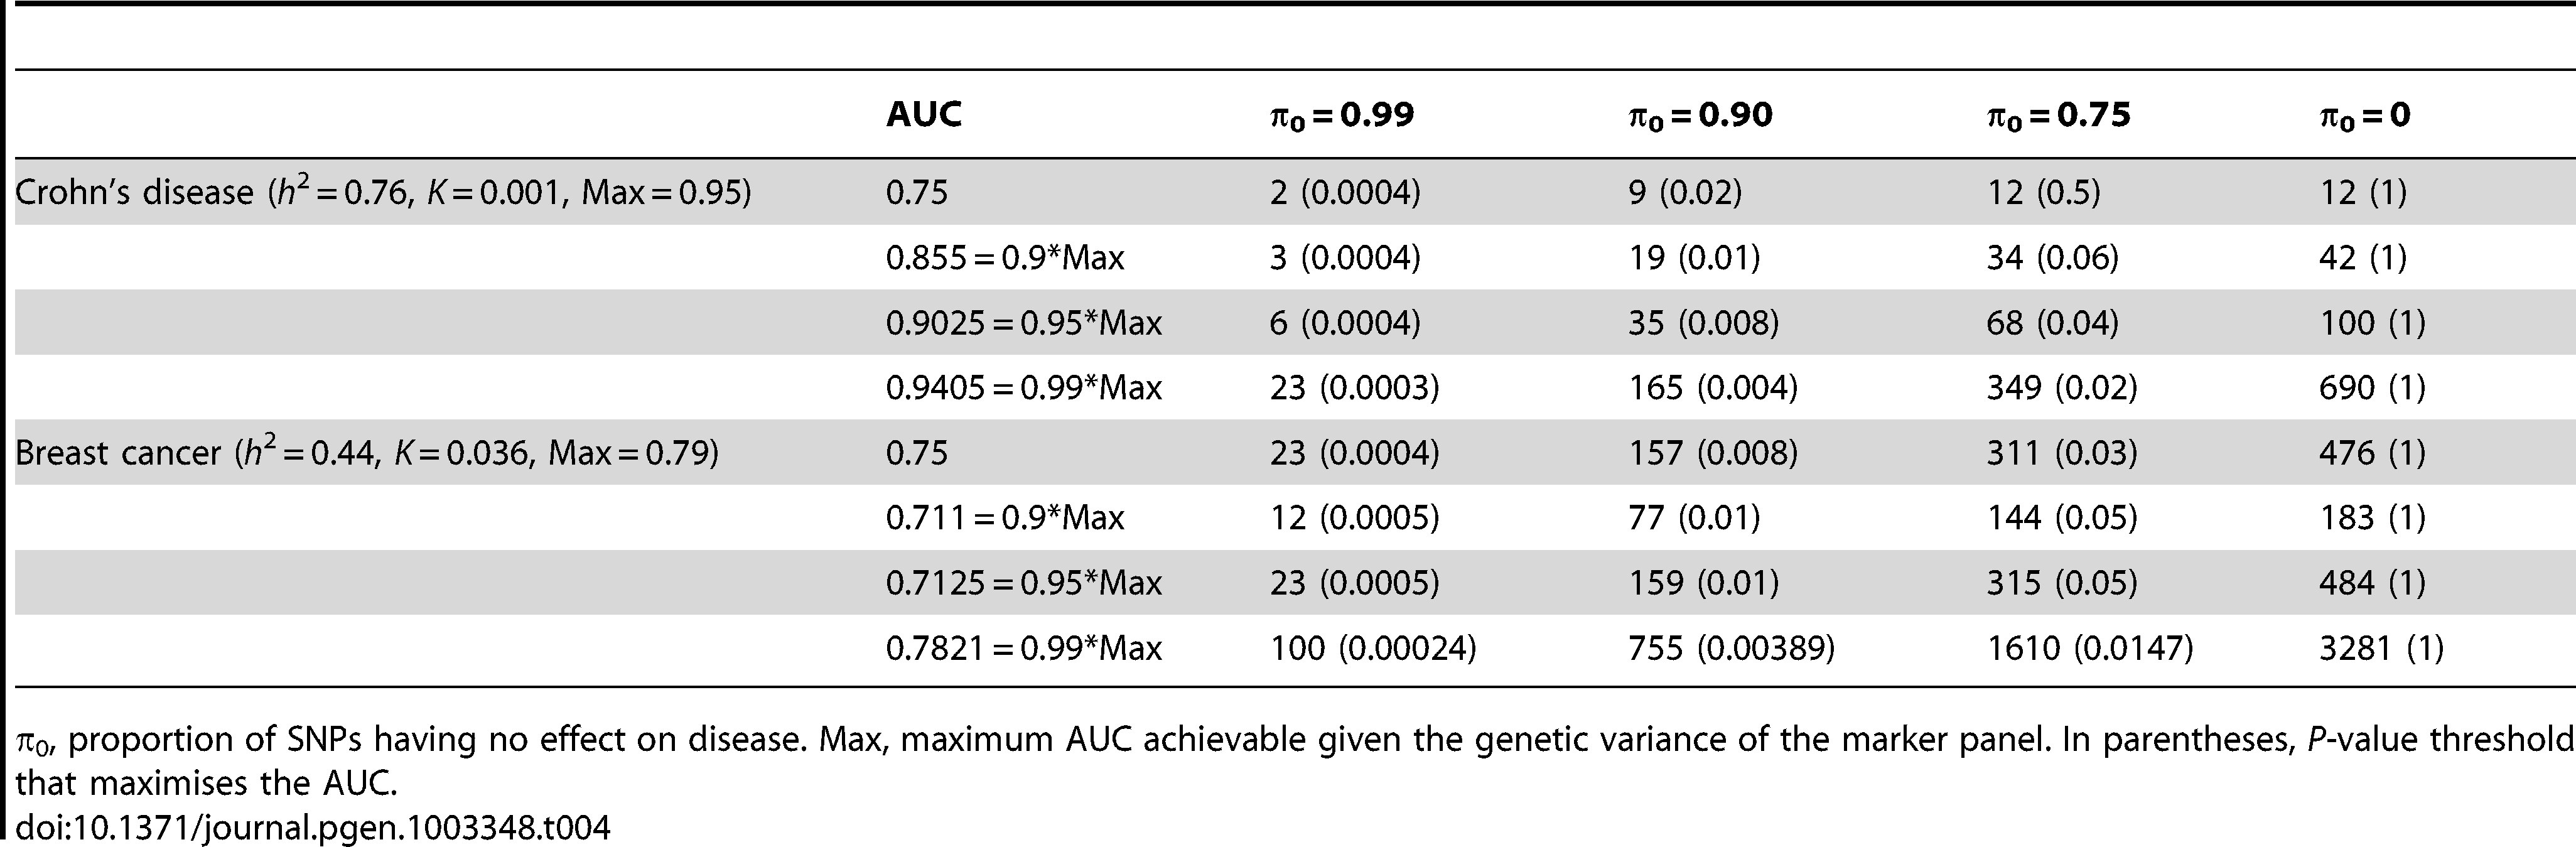 Numbers of cases and controls (in 1000s of each, rounded up) required to attain a specified AUC using a panel of 100,000 markers that explains half the heritability of liability.